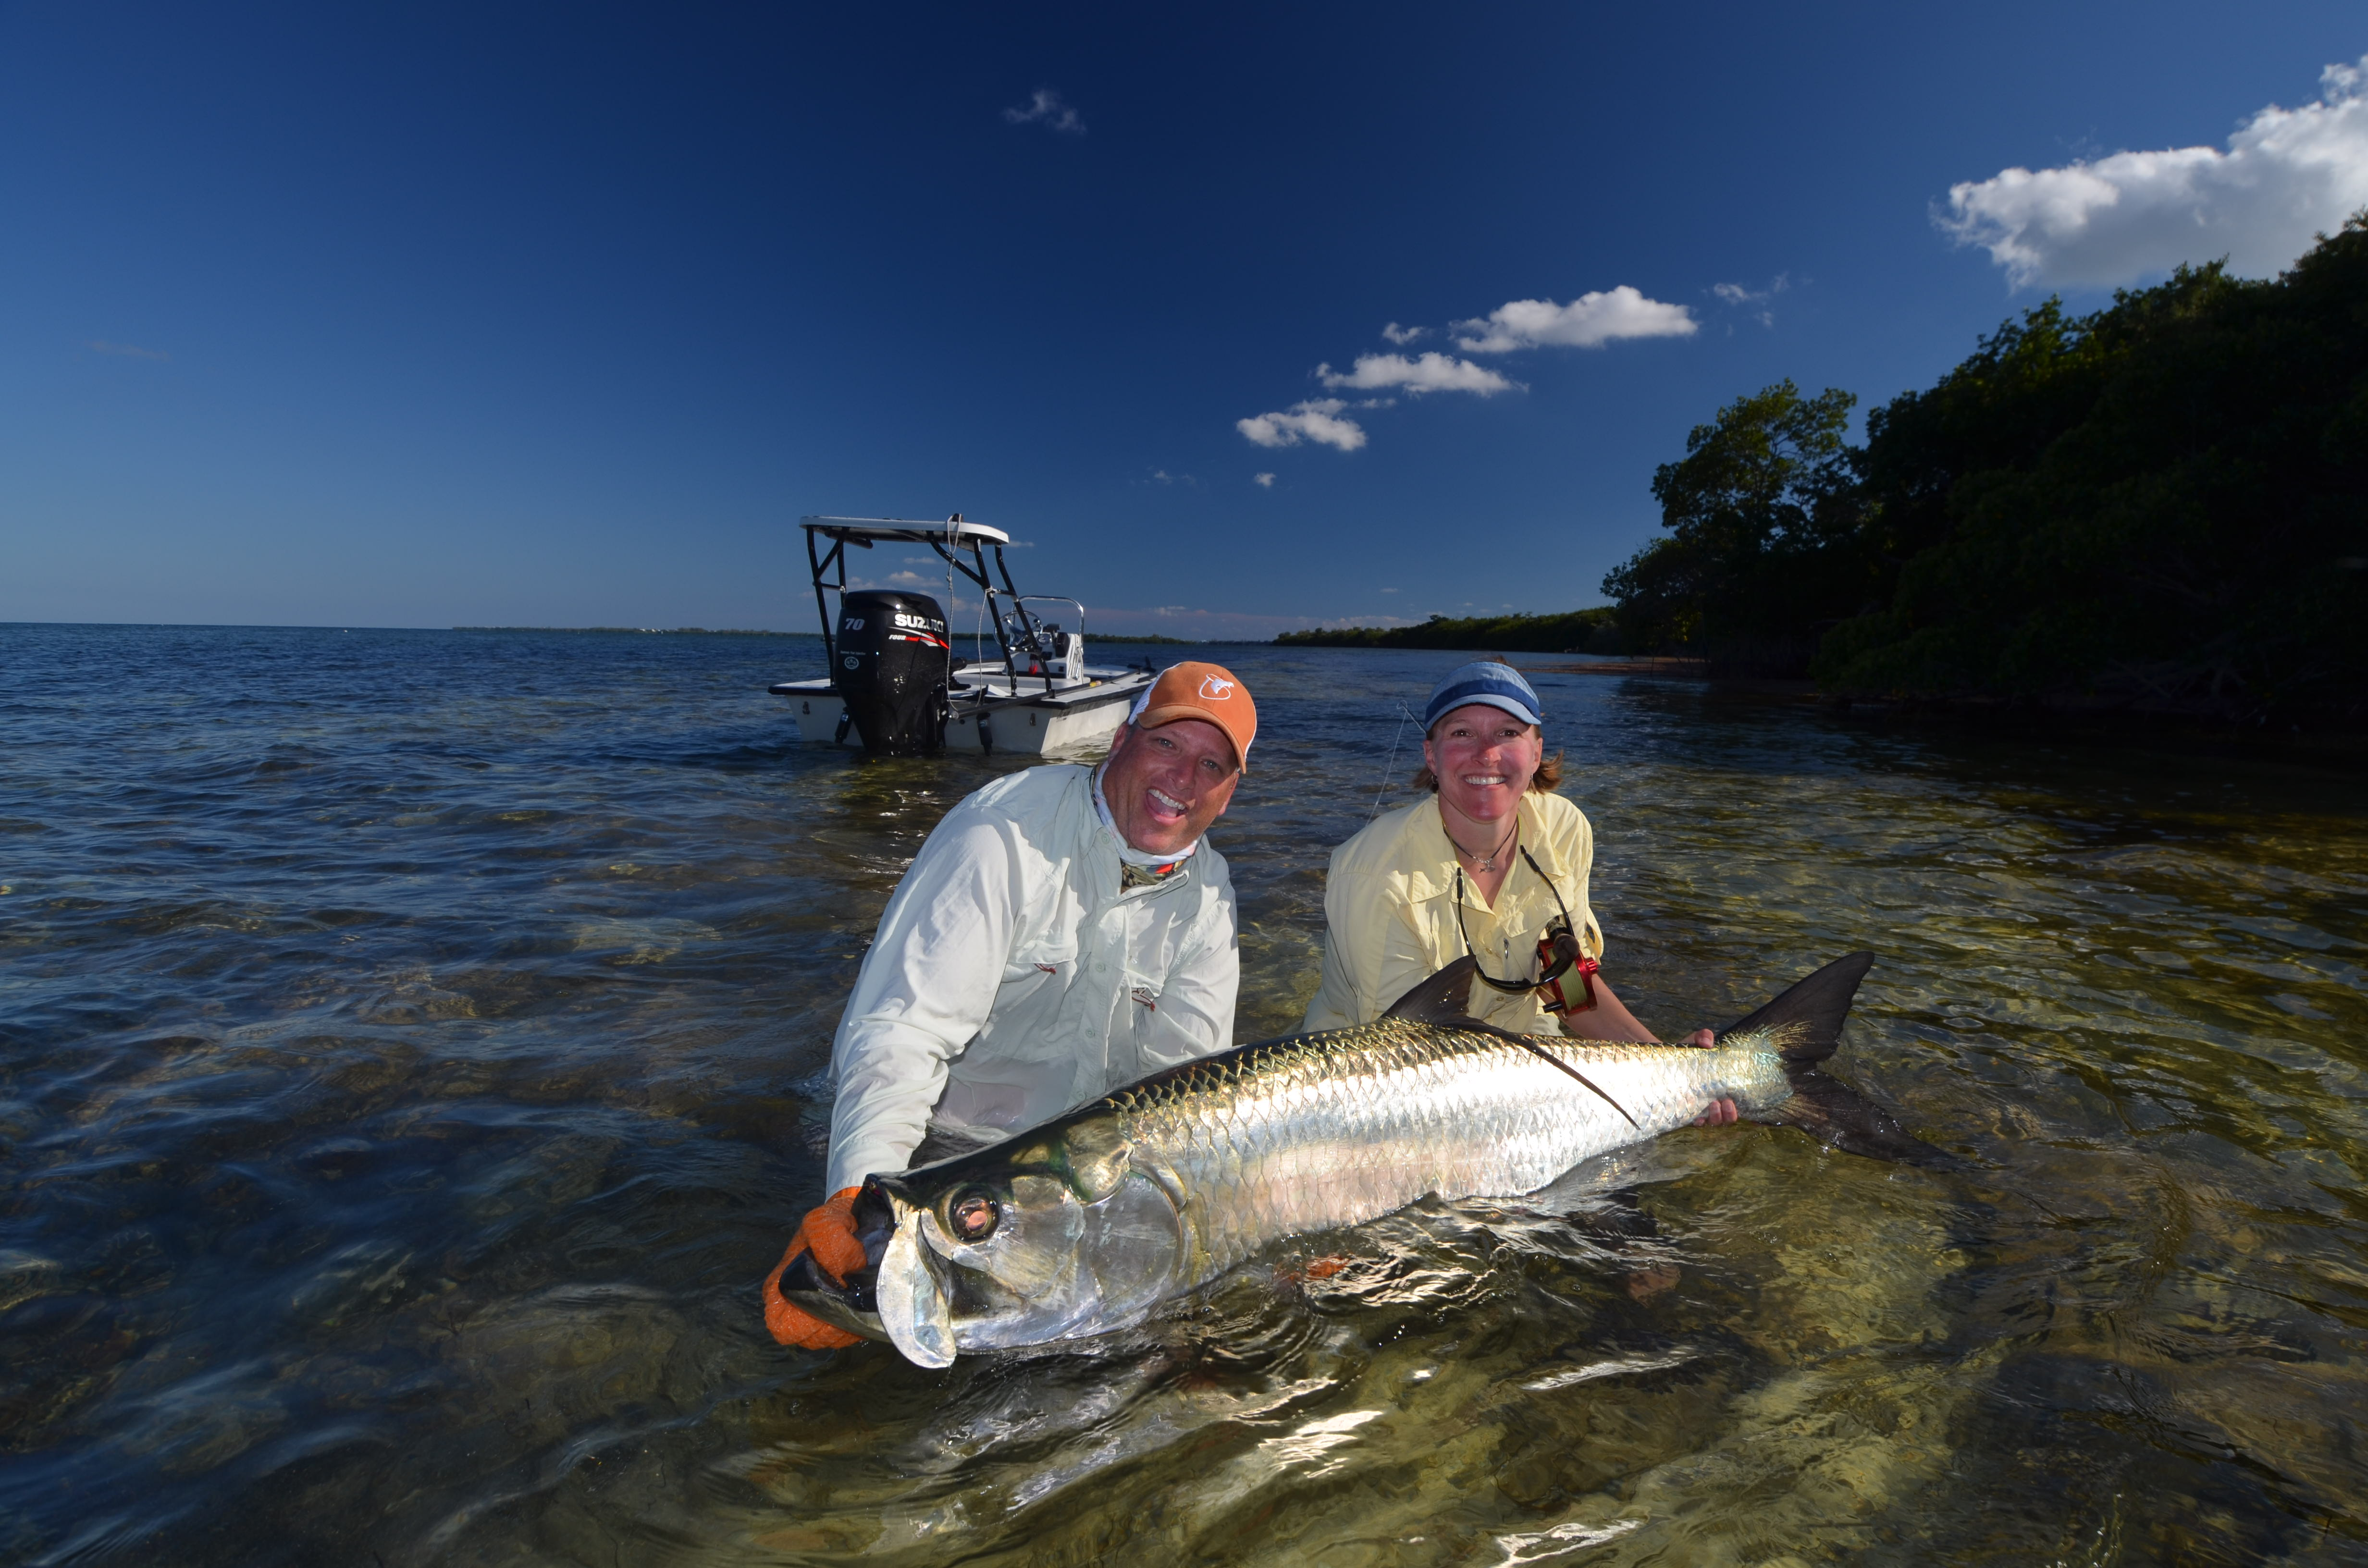 Tarpon Tips From Capt. Bruce ChardChardy's Tarpon Tips